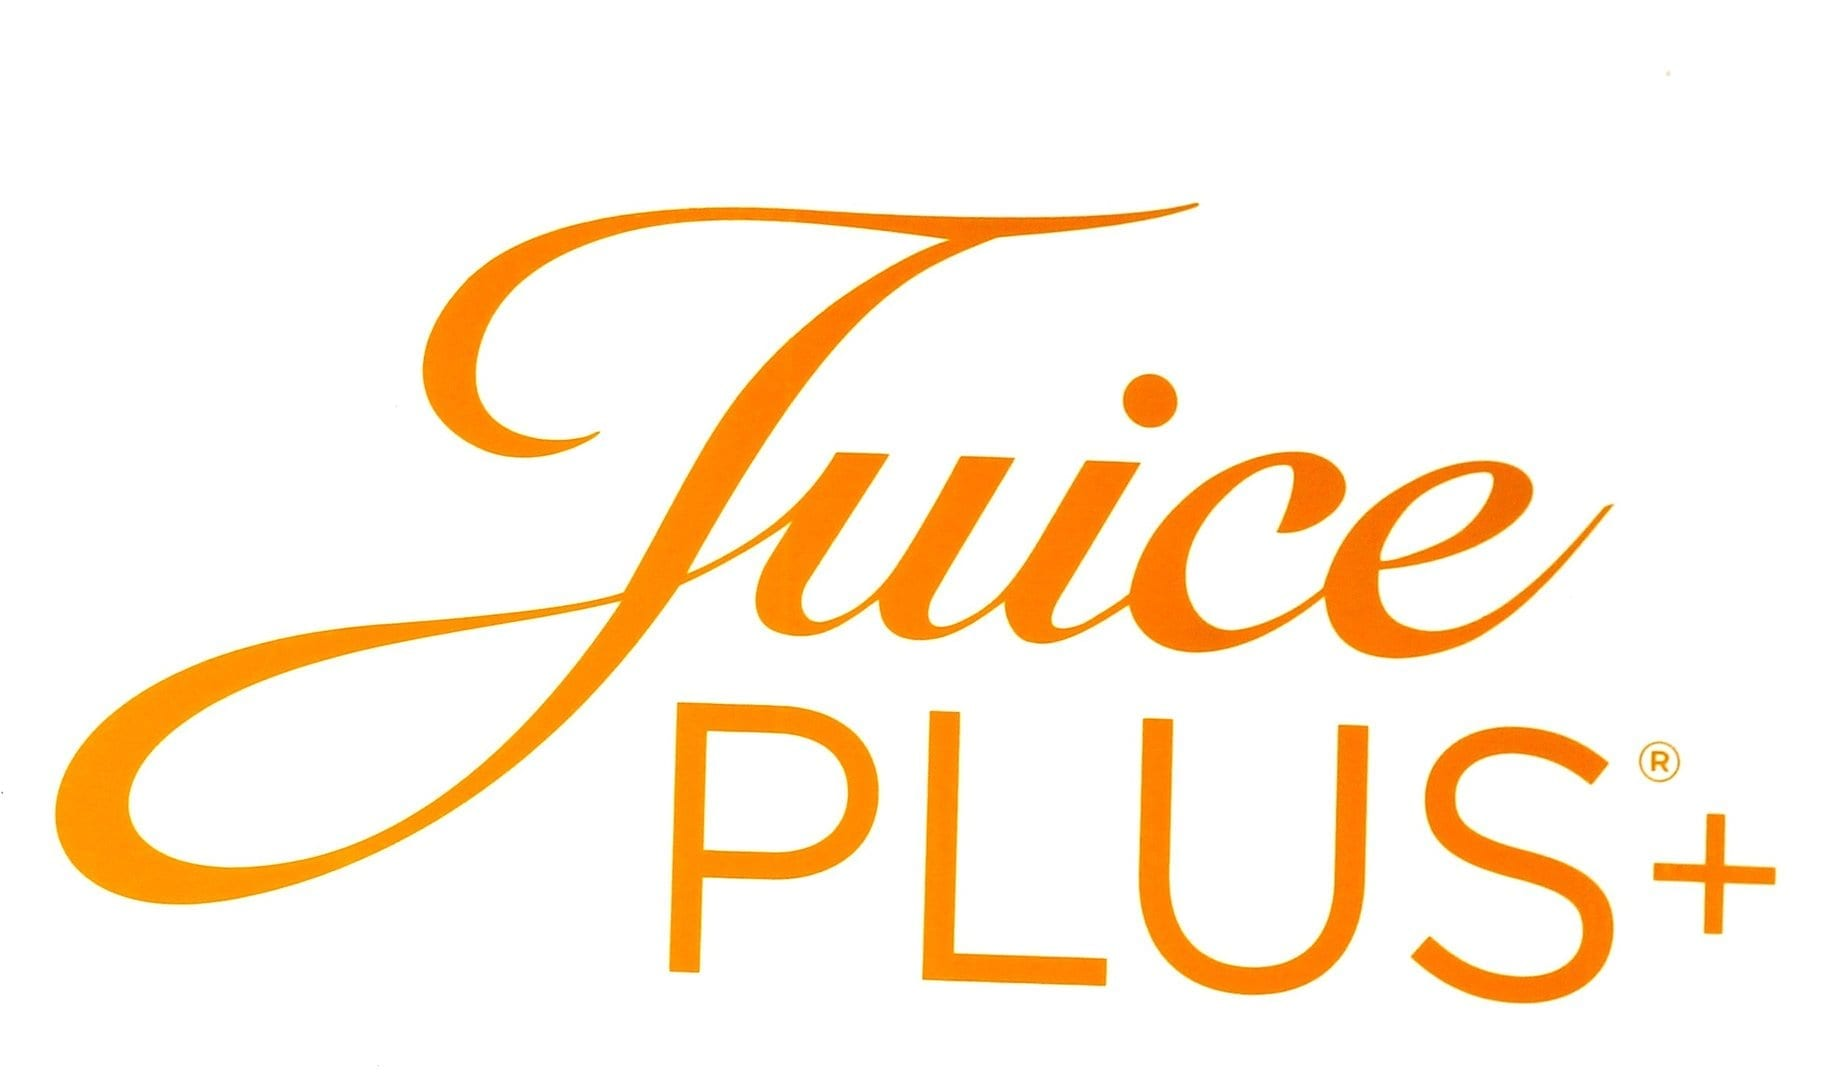 Juice Plus+ products are made from the juice powder concentrates and oils from more than 40 different fruits, vegetables and grains. Every Juice Plus+ product is made from quality ingredients grown farm fresh, providing the natural nutrients your body needs.<br><br><strong>https://www.juiceplus.com/us/en</strong>